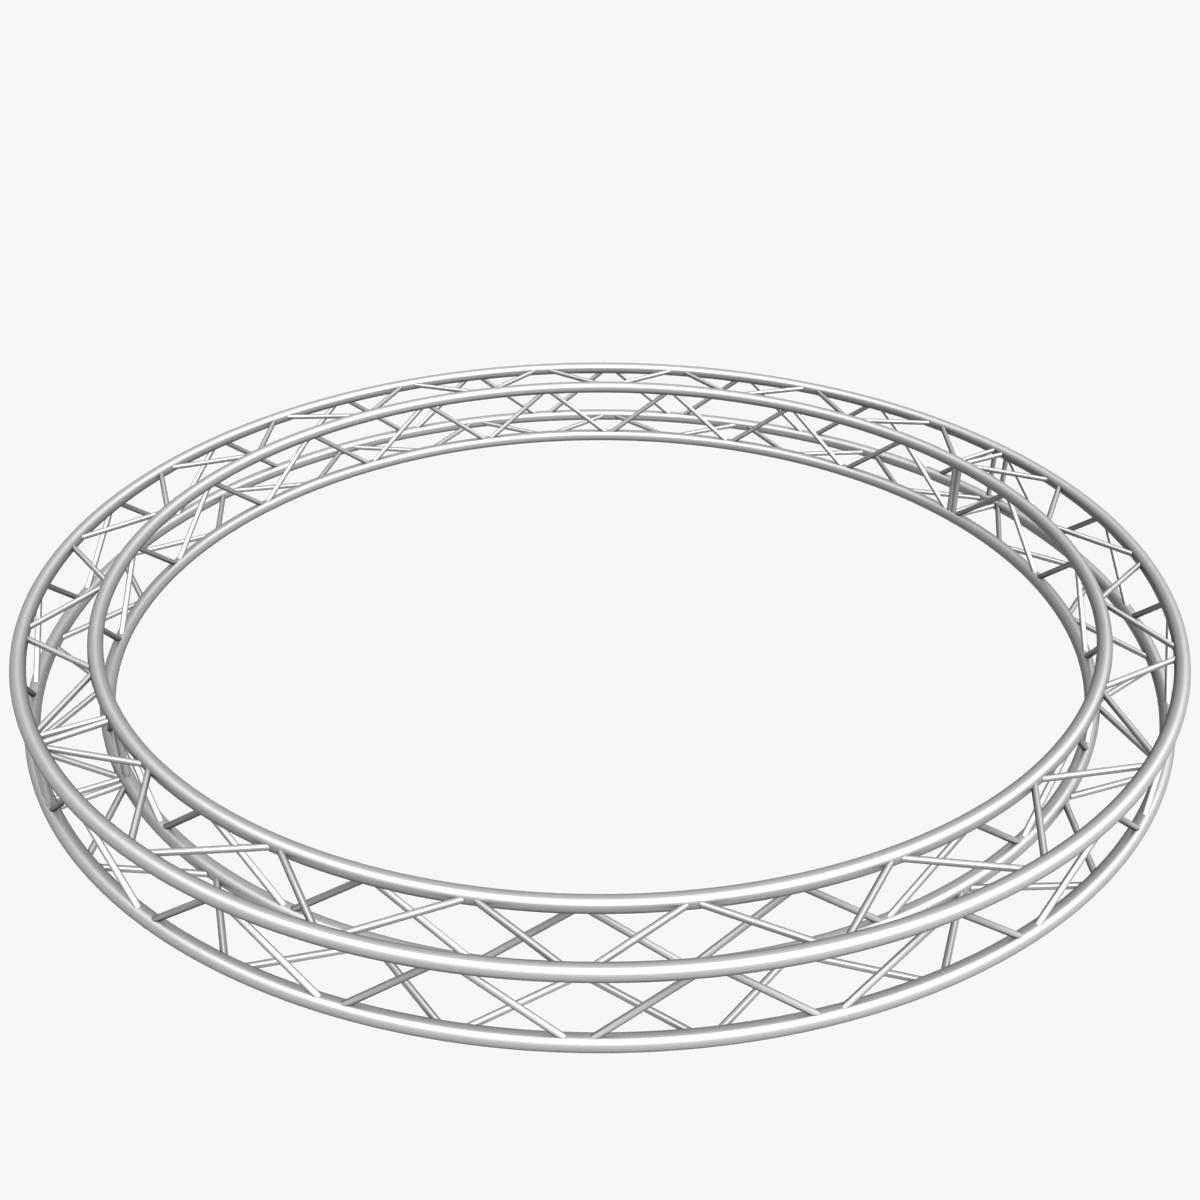 Circle Square Truss (400cm)  - Extended License